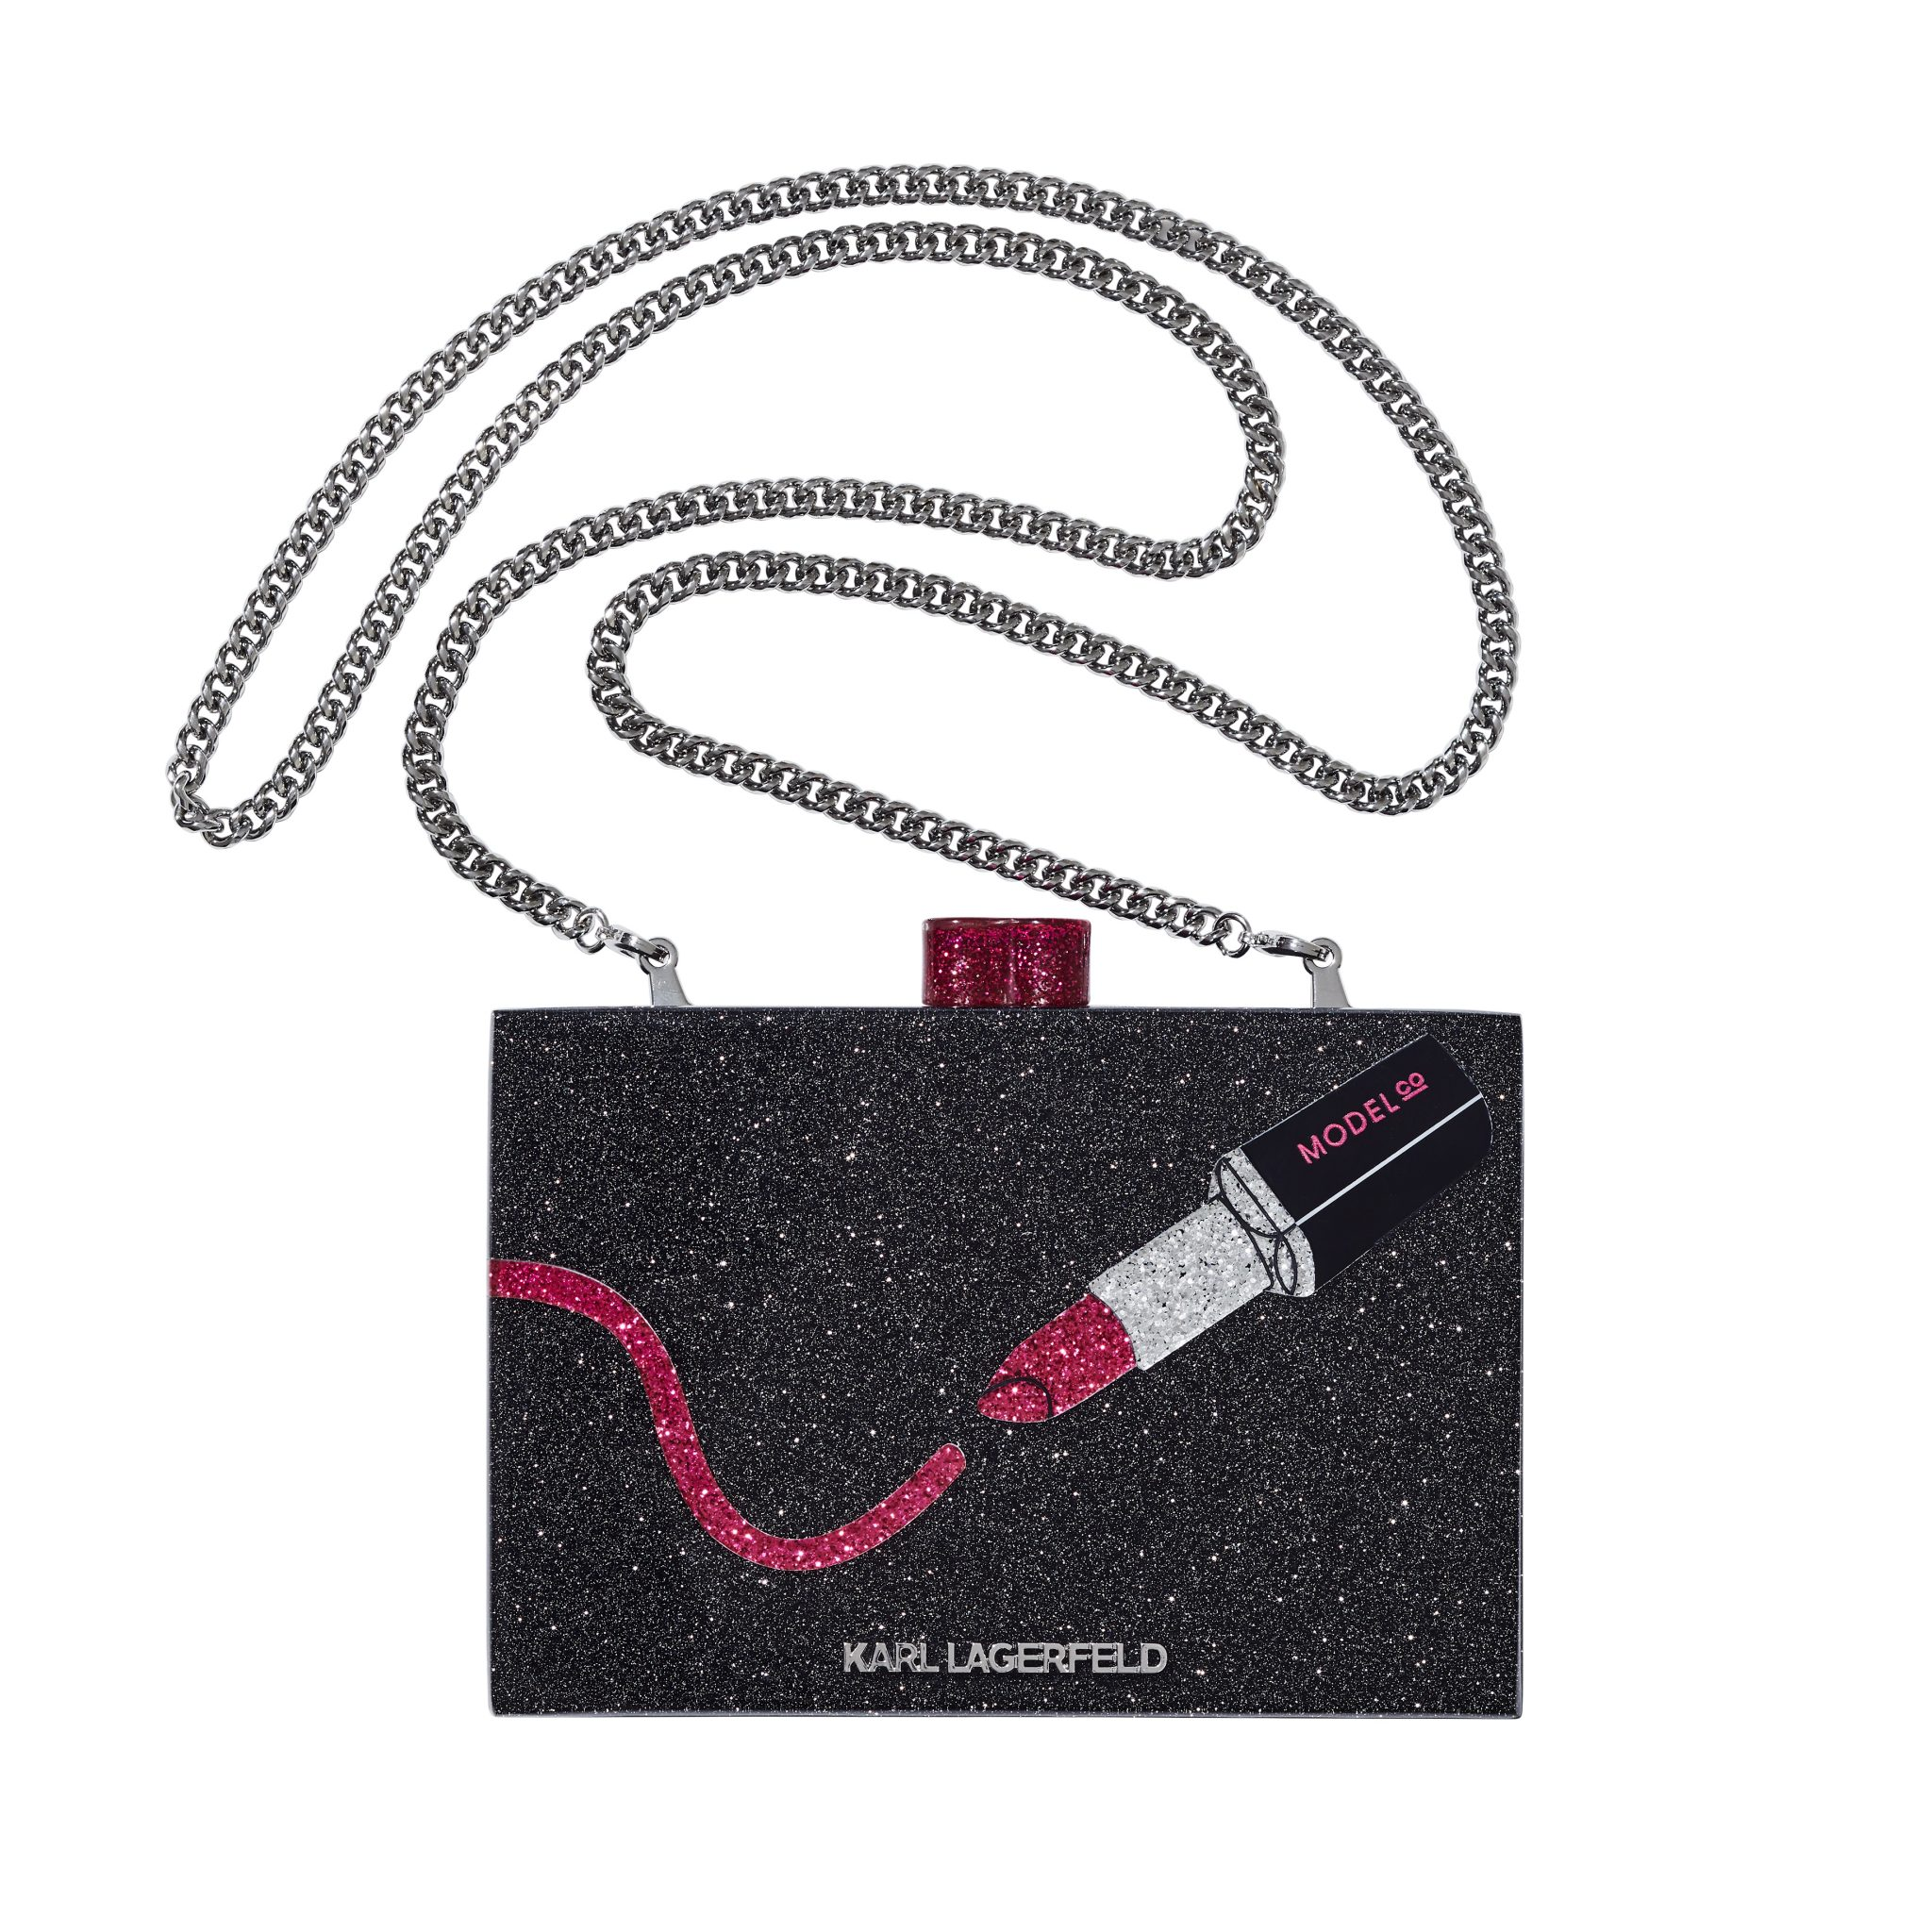 KARL LAGERFELD + MODELCO MINAUDIERE WITH MINI LIP KIT